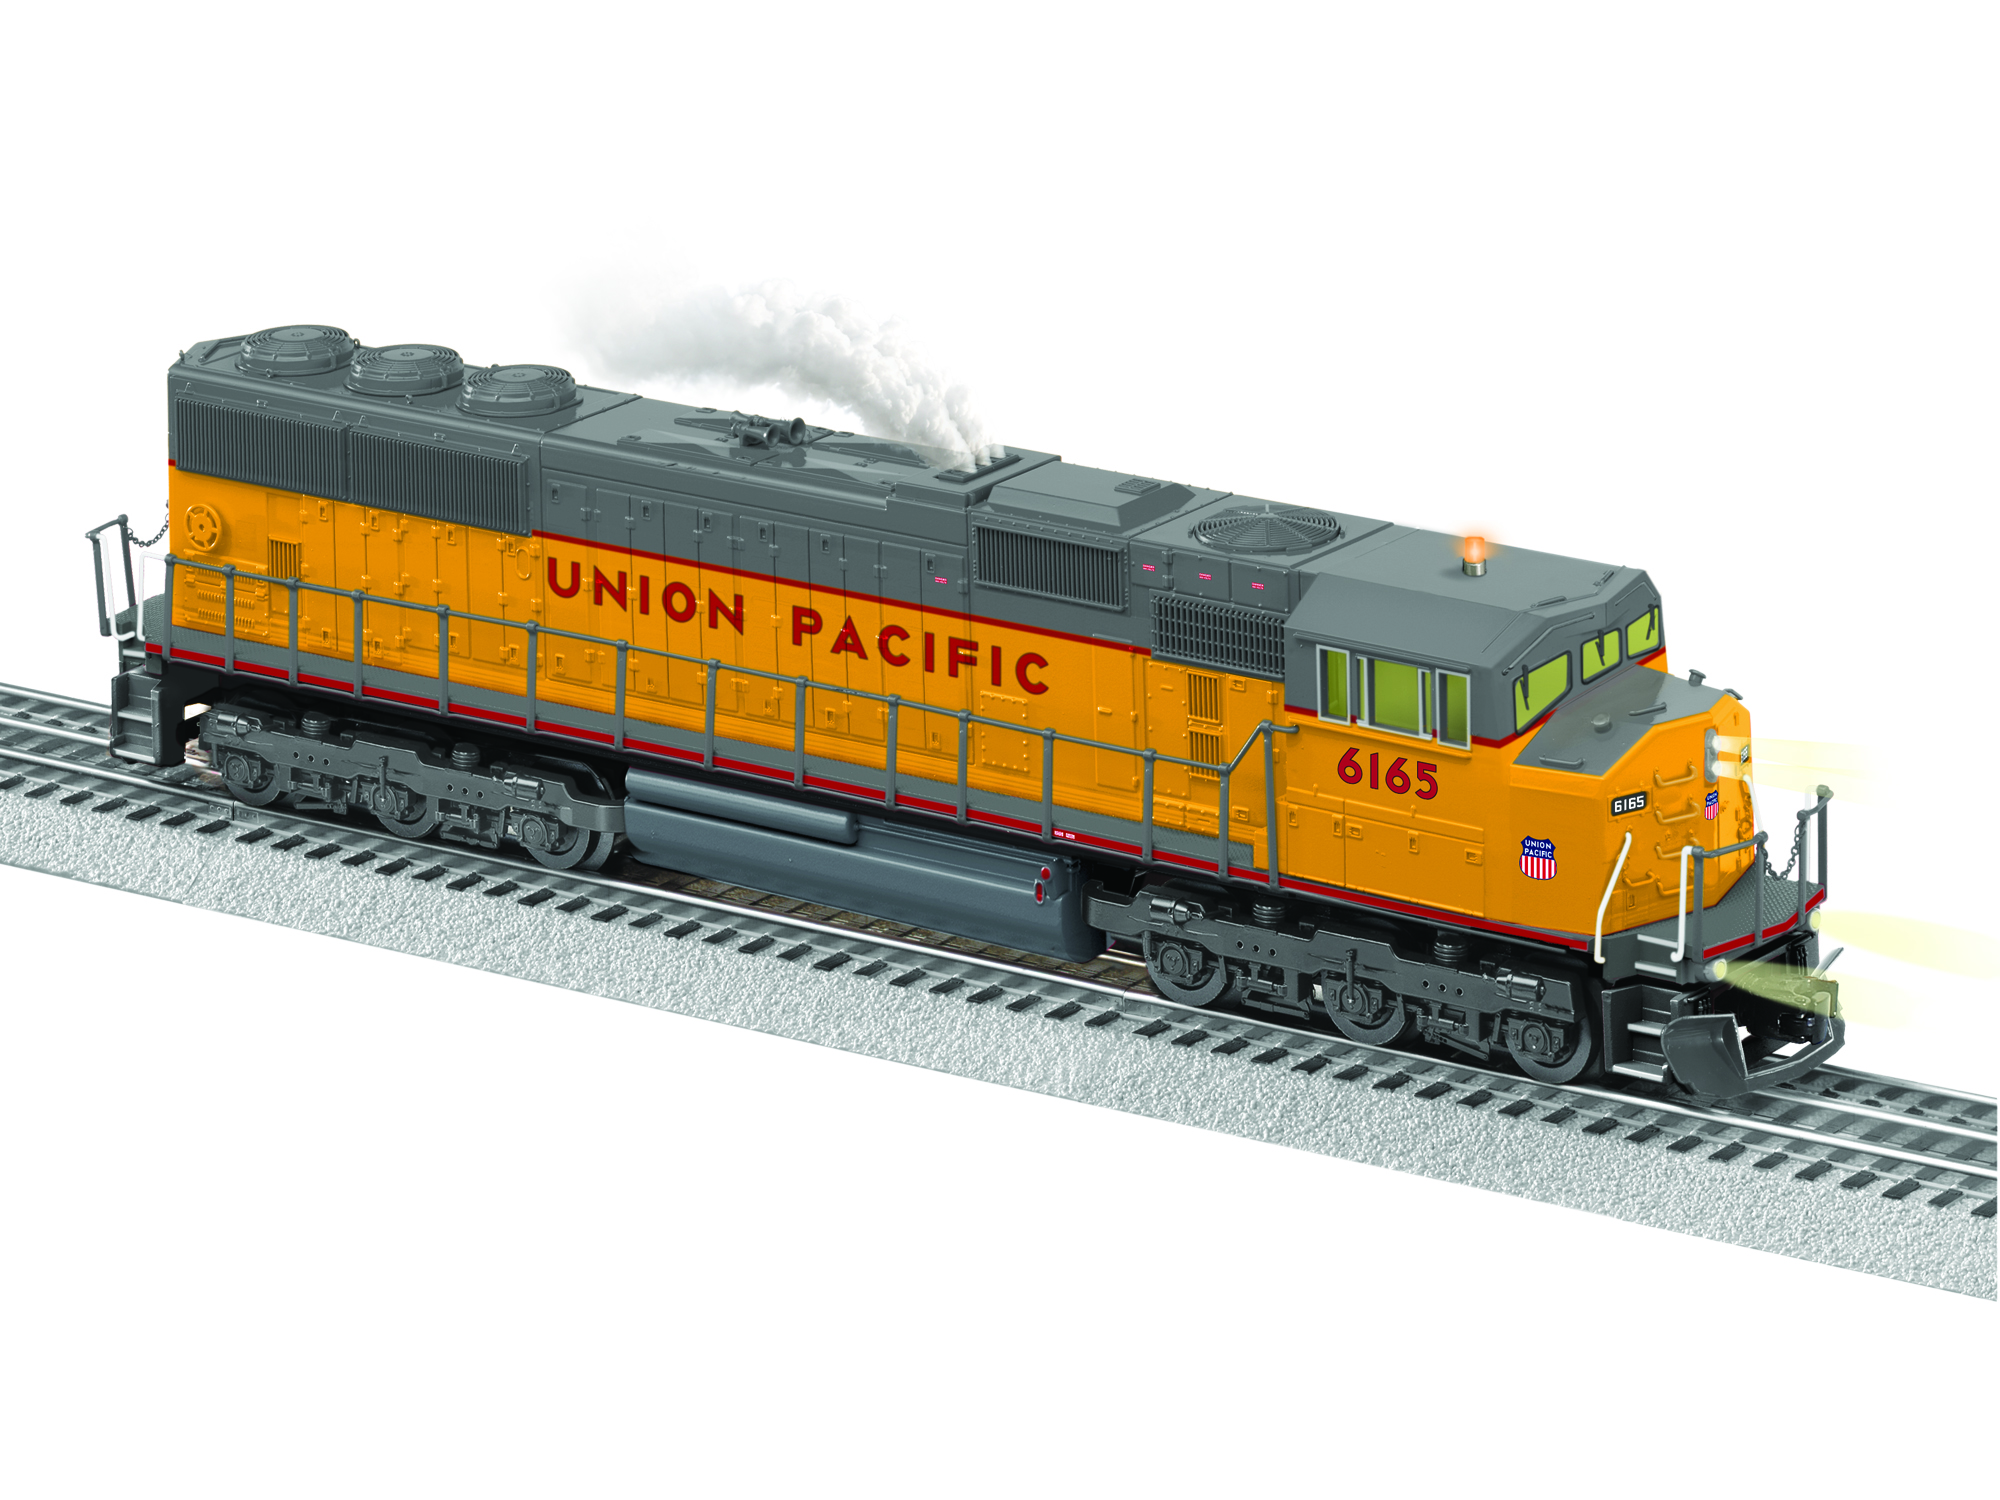 6-84411 UNION PACIFIC SD60M #6165